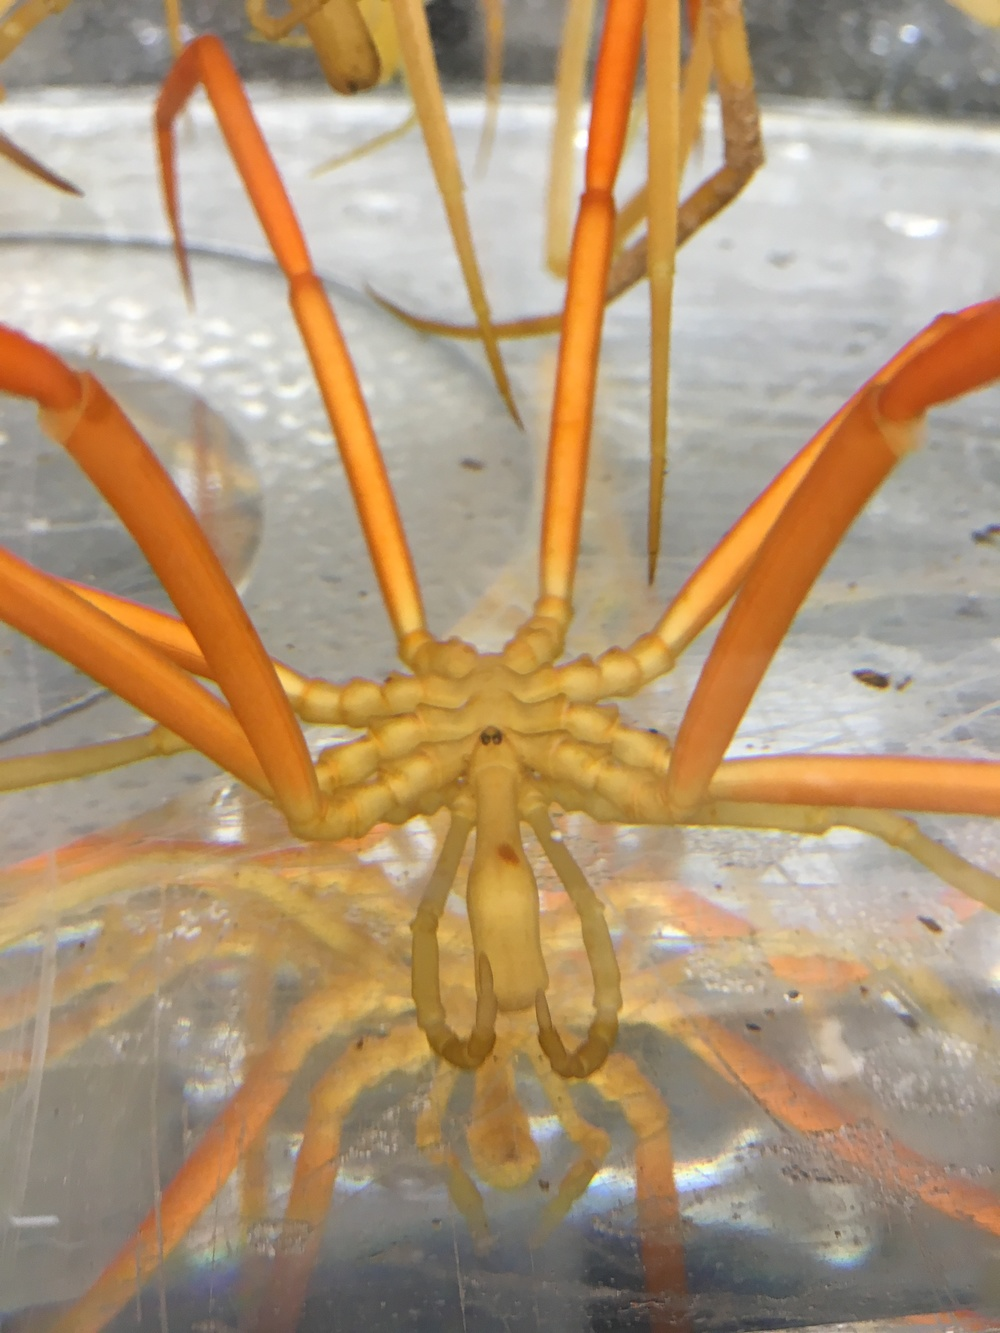 A large specimen of  Colossendeis  - either  C. australis  or  C. scotti .  Two of its four eyes are visible on the ocular tubercle on its head.  Other appendages visible are the eight walking legs (orange), the pedipalps on either side of the head, and the proboscis.